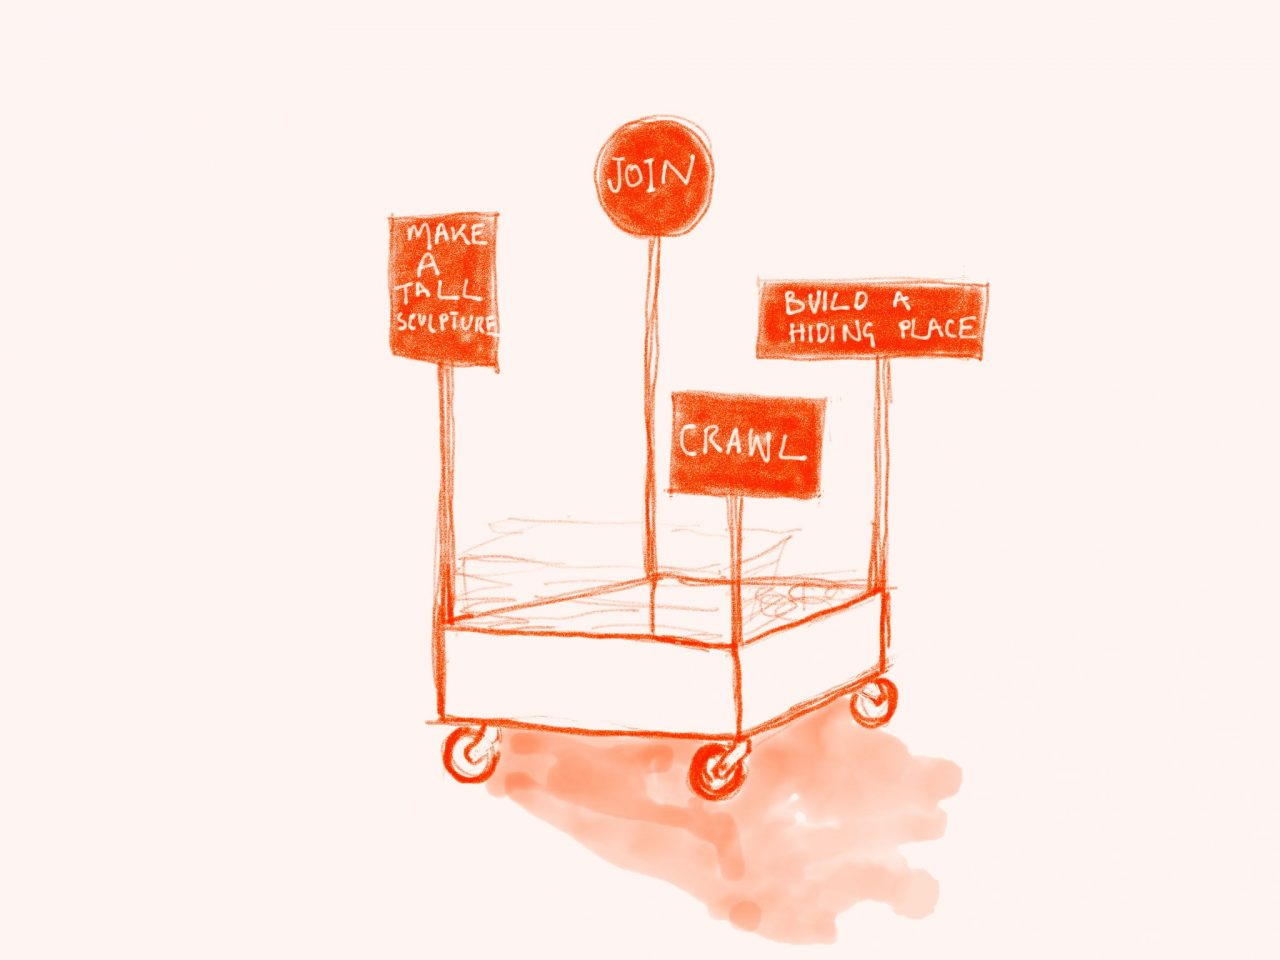 Trolley on wheels with signs saying: 'make a tall sculpture', 'join', 'crawl', 'building a hiding place'